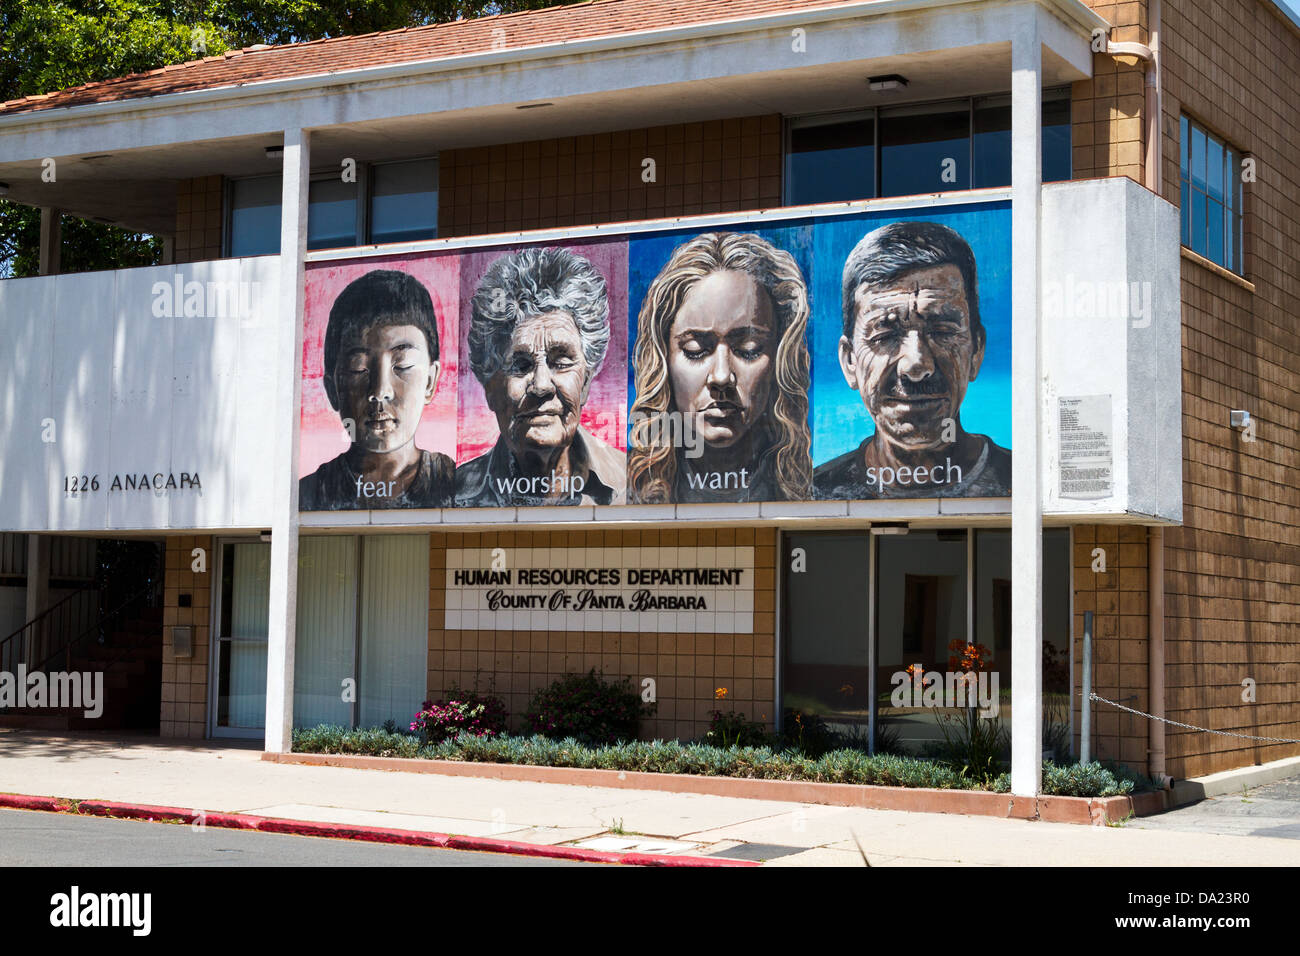 Exterior view of the Human Resources Department building in Santa Barbara, California showing a mural. - Stock Image